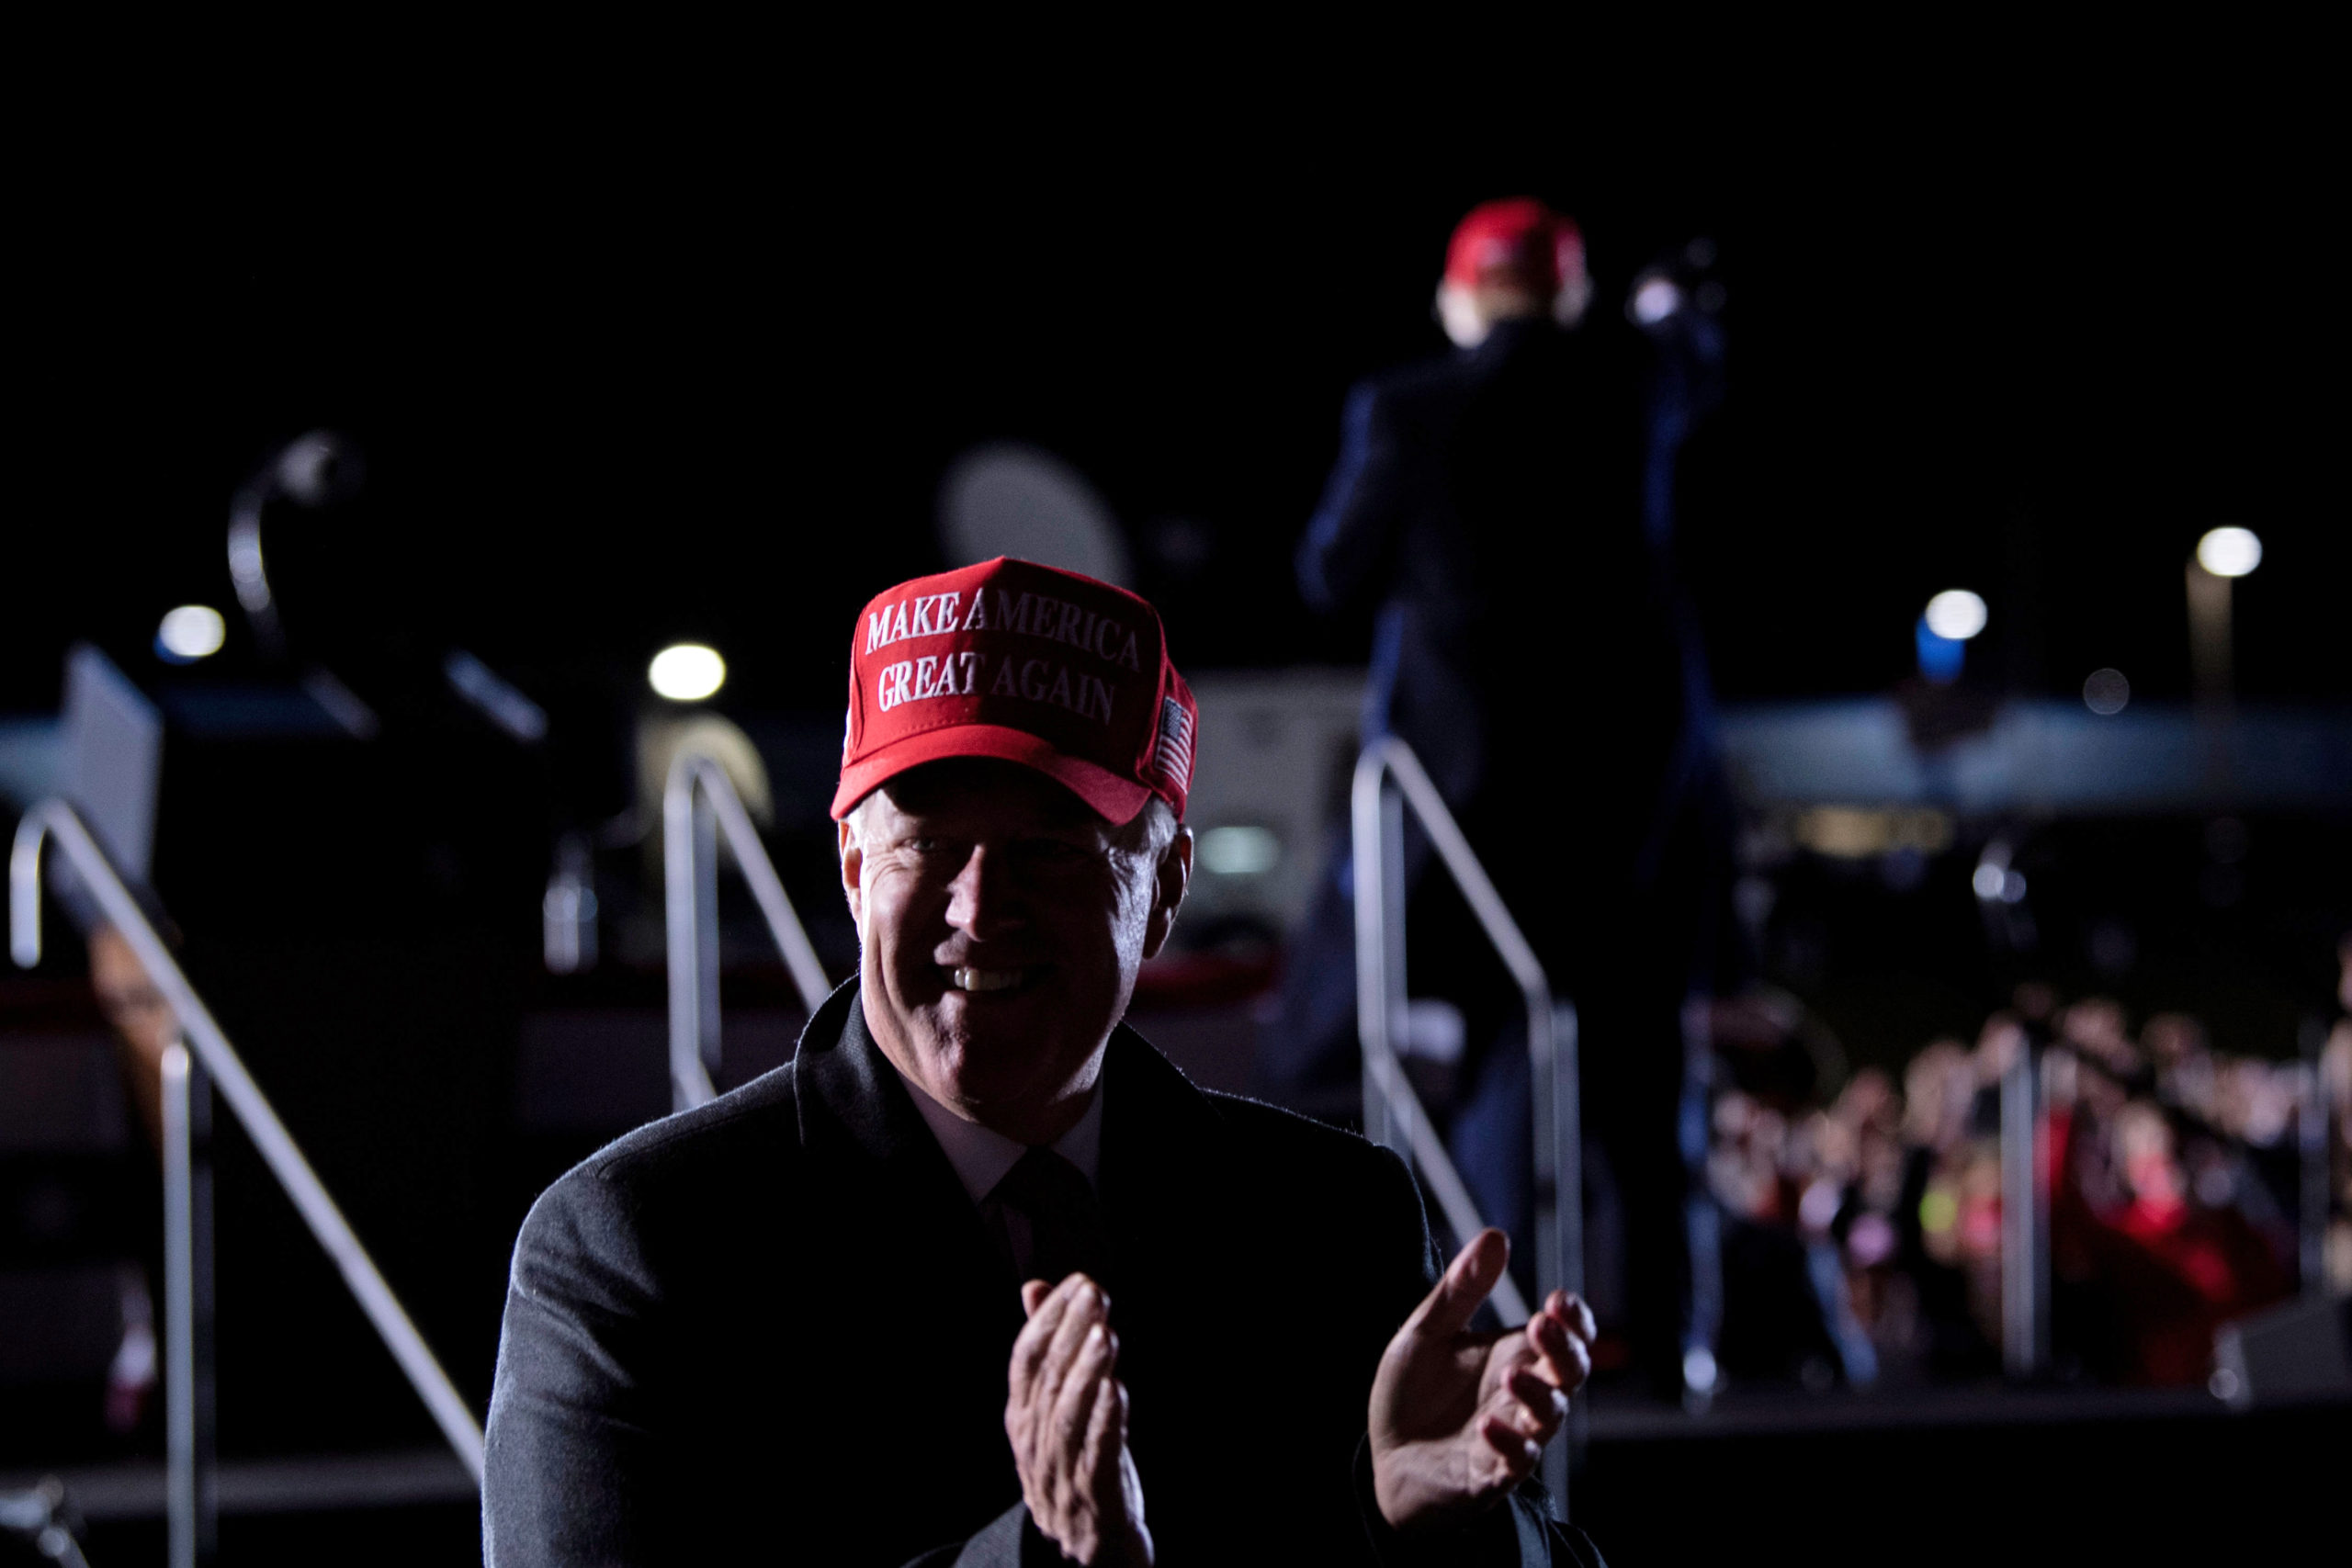 White House Chief of Staff Mark Meadows (L) claps as US President Donald Trump leaves after speaking during a Make America Great Again rally at Hickory Regional Airport in Hickory, North Carolina on November 1, 2020. (Photo by BRENDAN SMIALOWSKI/AFP via Getty Images)